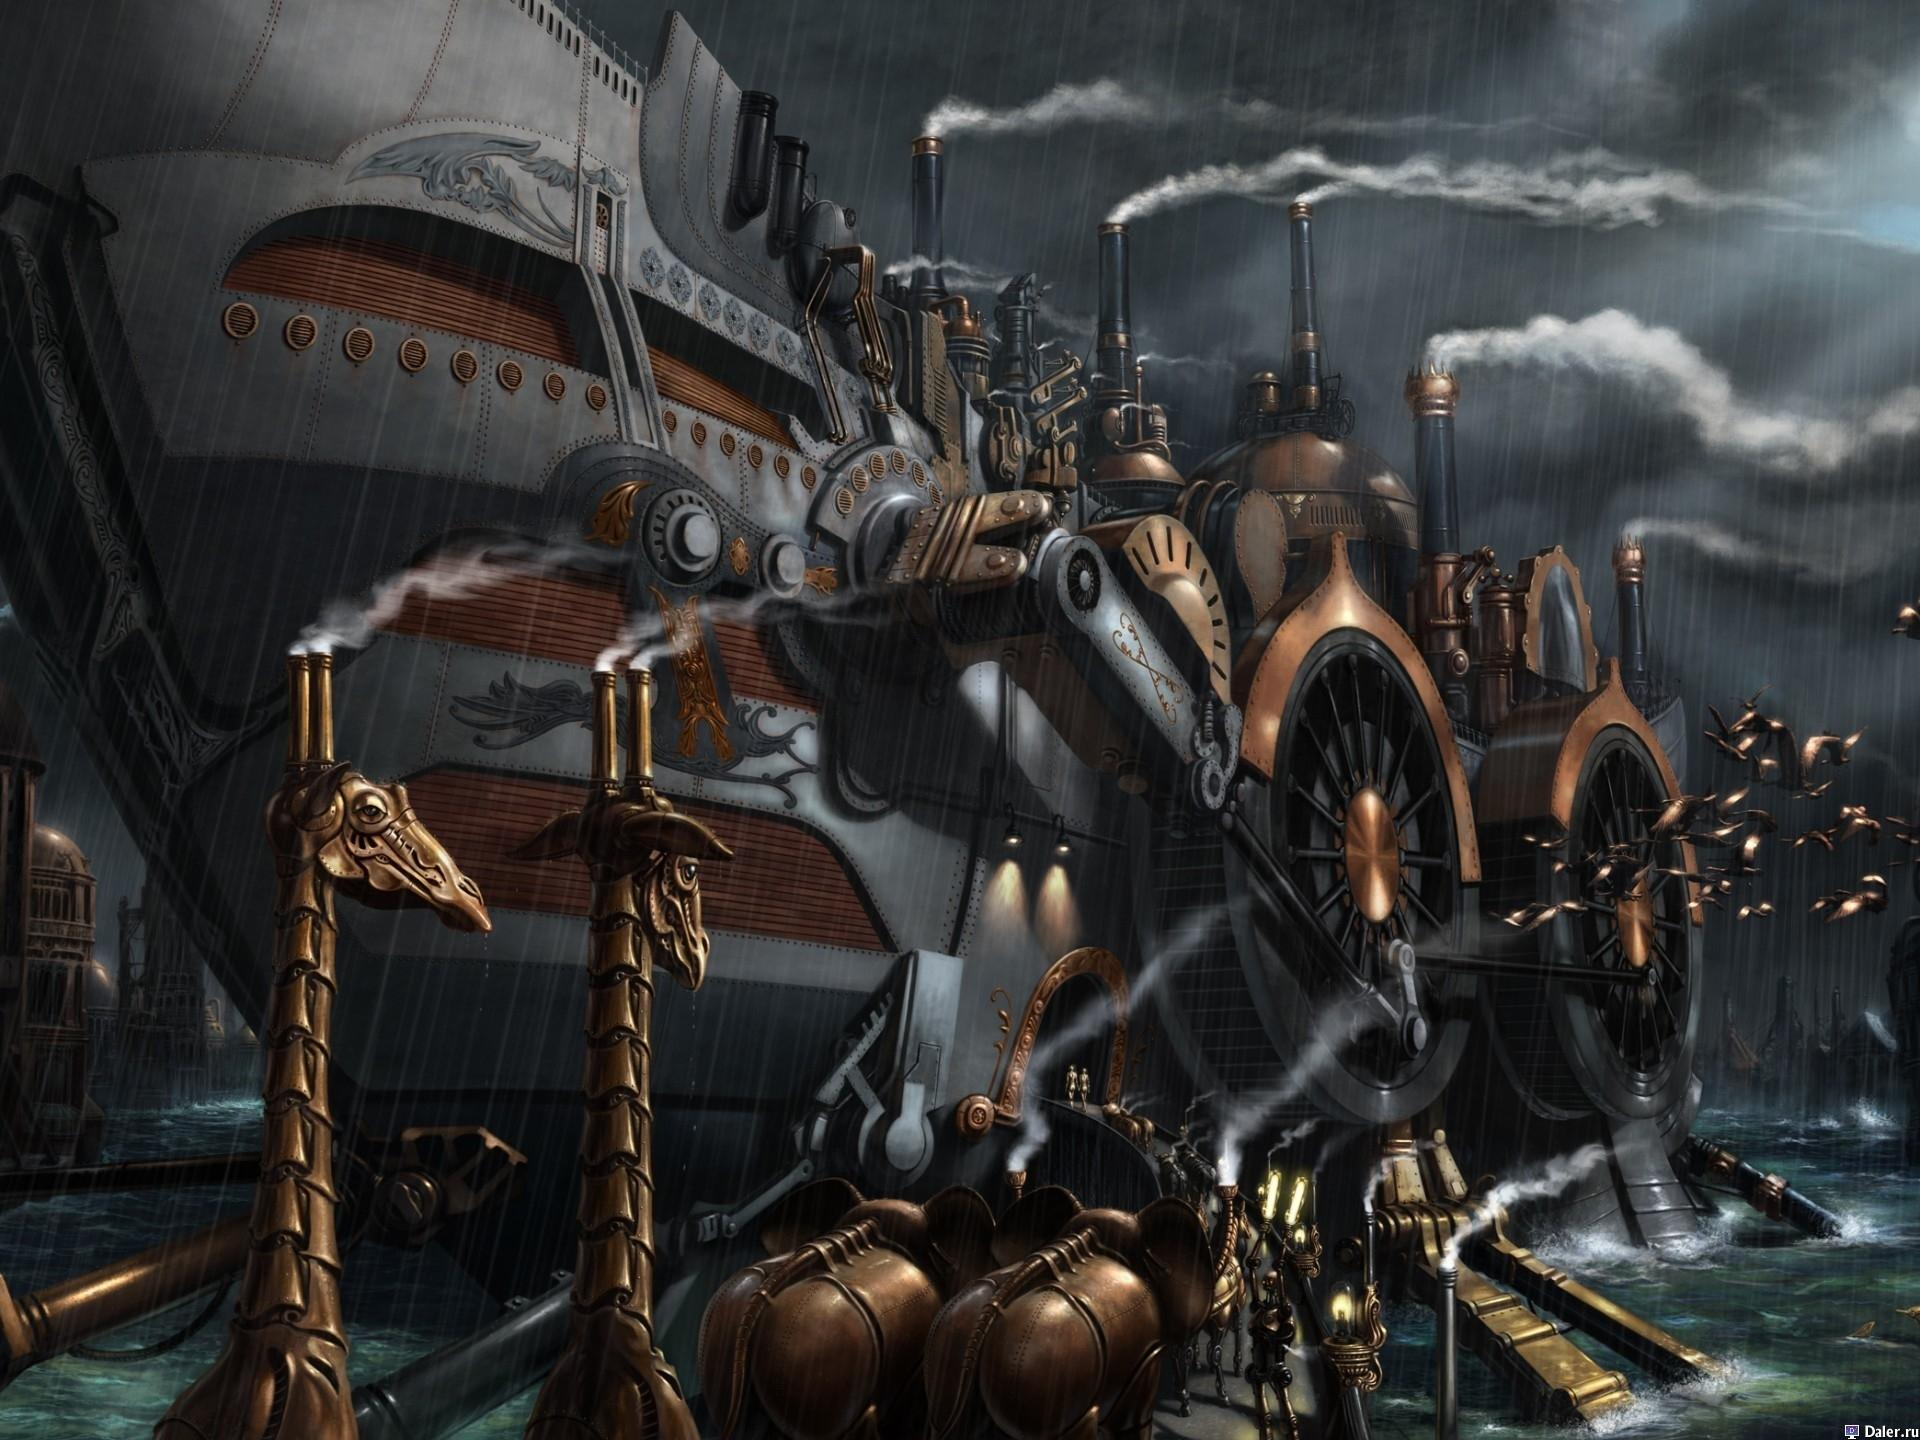 Download Wallpapers, Download 1920x1440 steampunk ships bernard digital art 1920x1440 wallpaper Wallpaper –Free Wallpapers Download